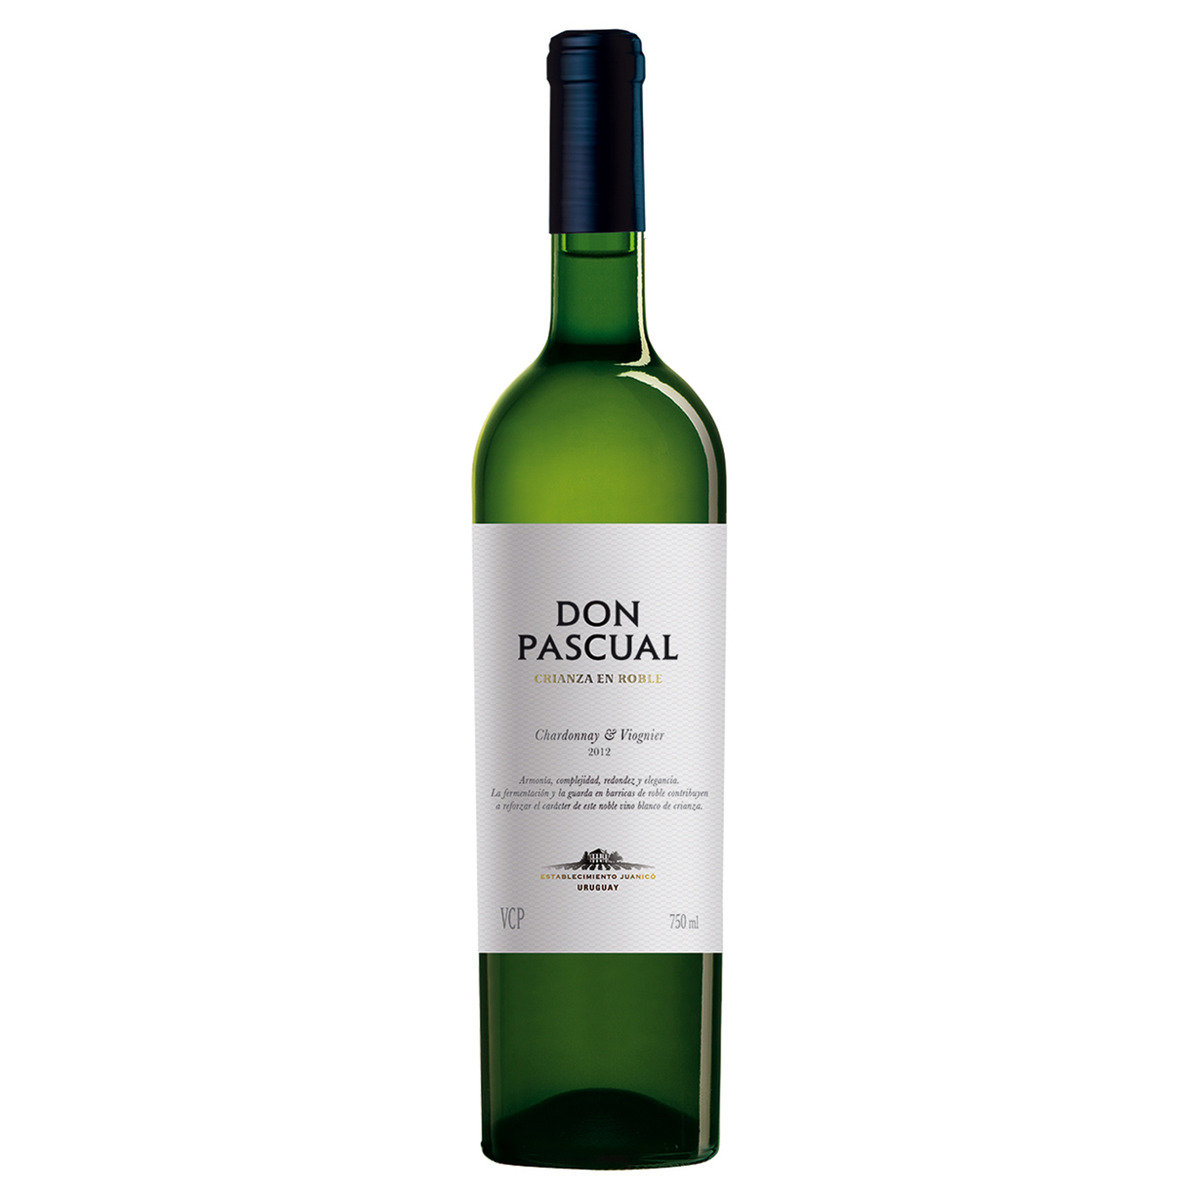 Don Pascual Chardonnay Viognier Roble 12' 750ml